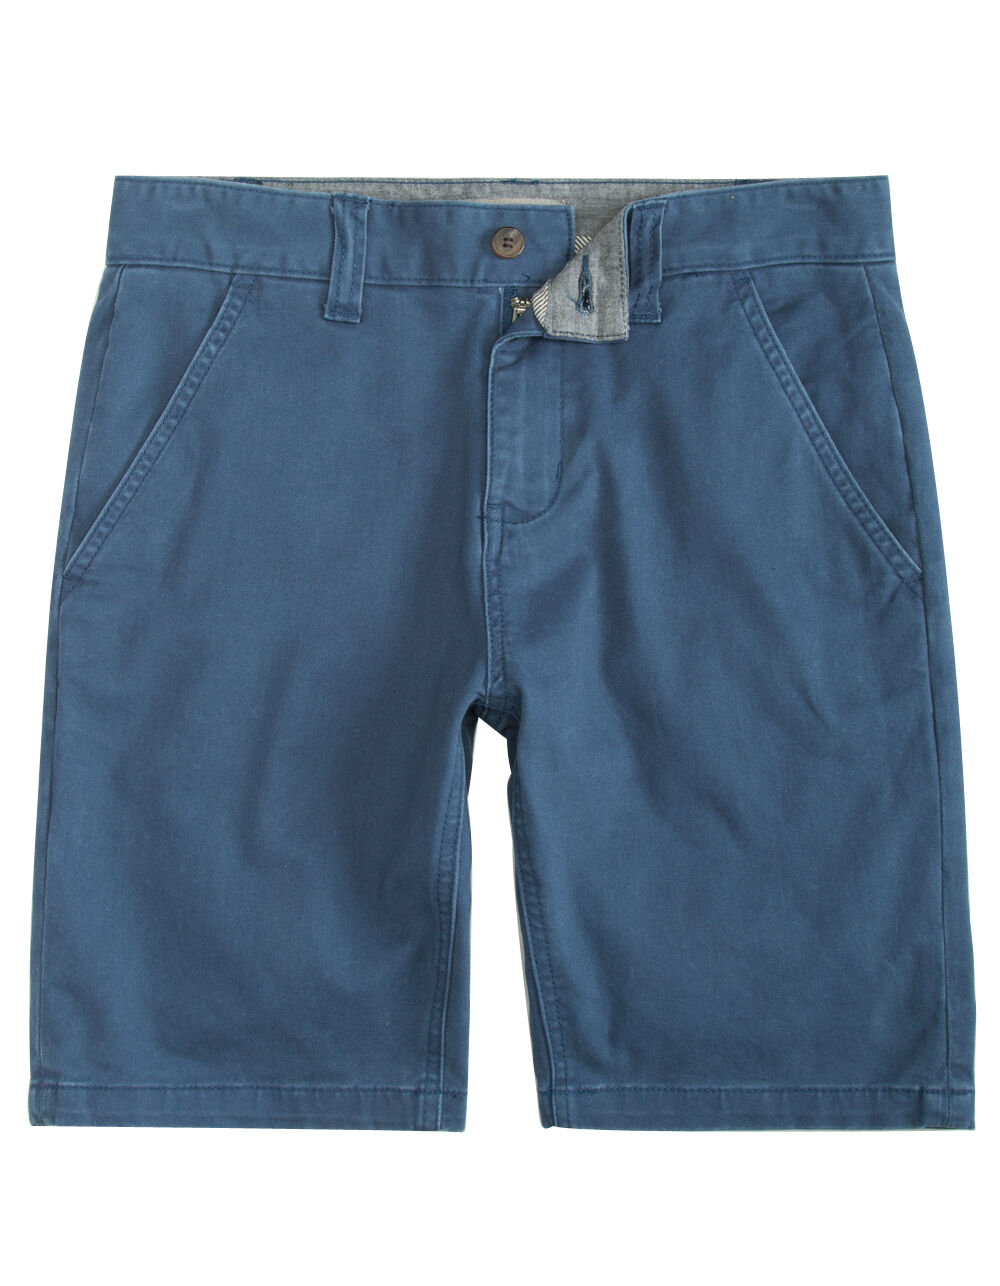 Image of CHARLES AND A HALF LINCOLN STRETCH BLUE SHORTS